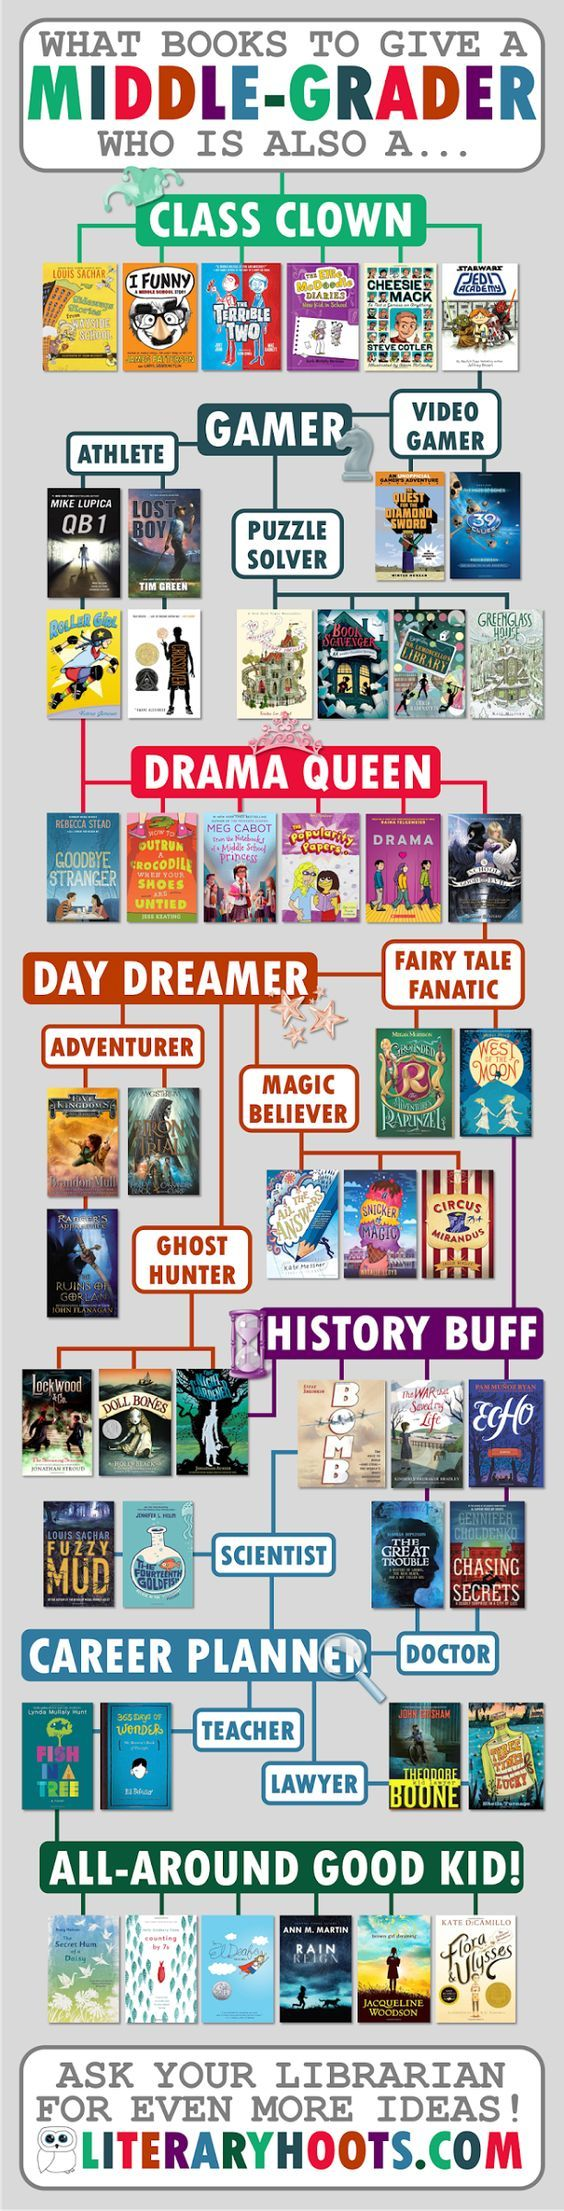 Literary Hoots: Flowchart: What Books to Give a Middle-Grader